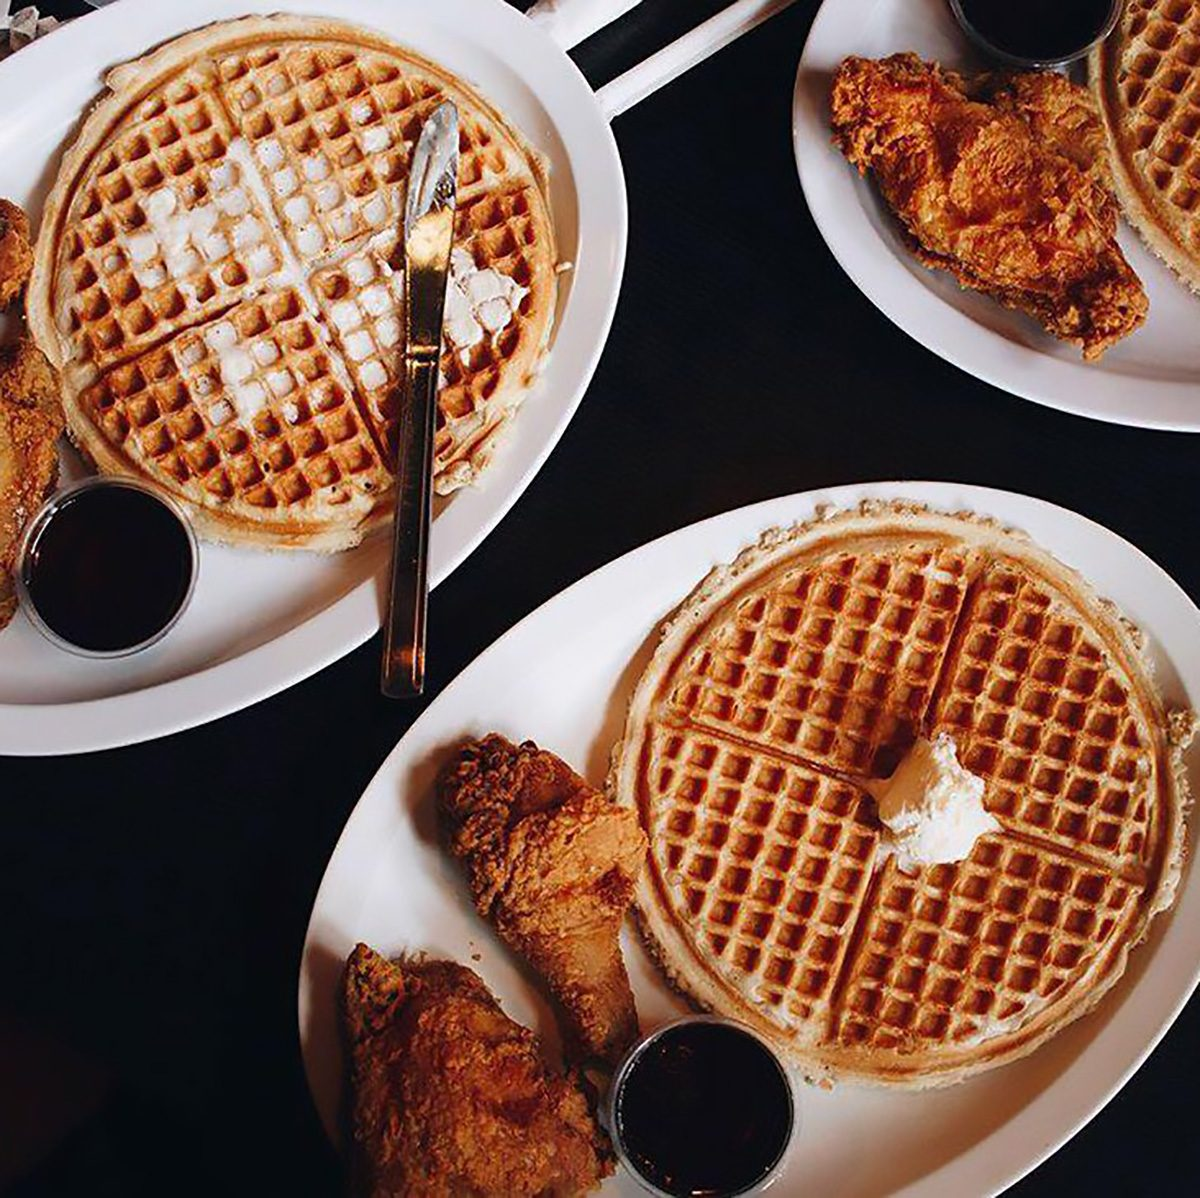 Best waffles in the state of Illinois